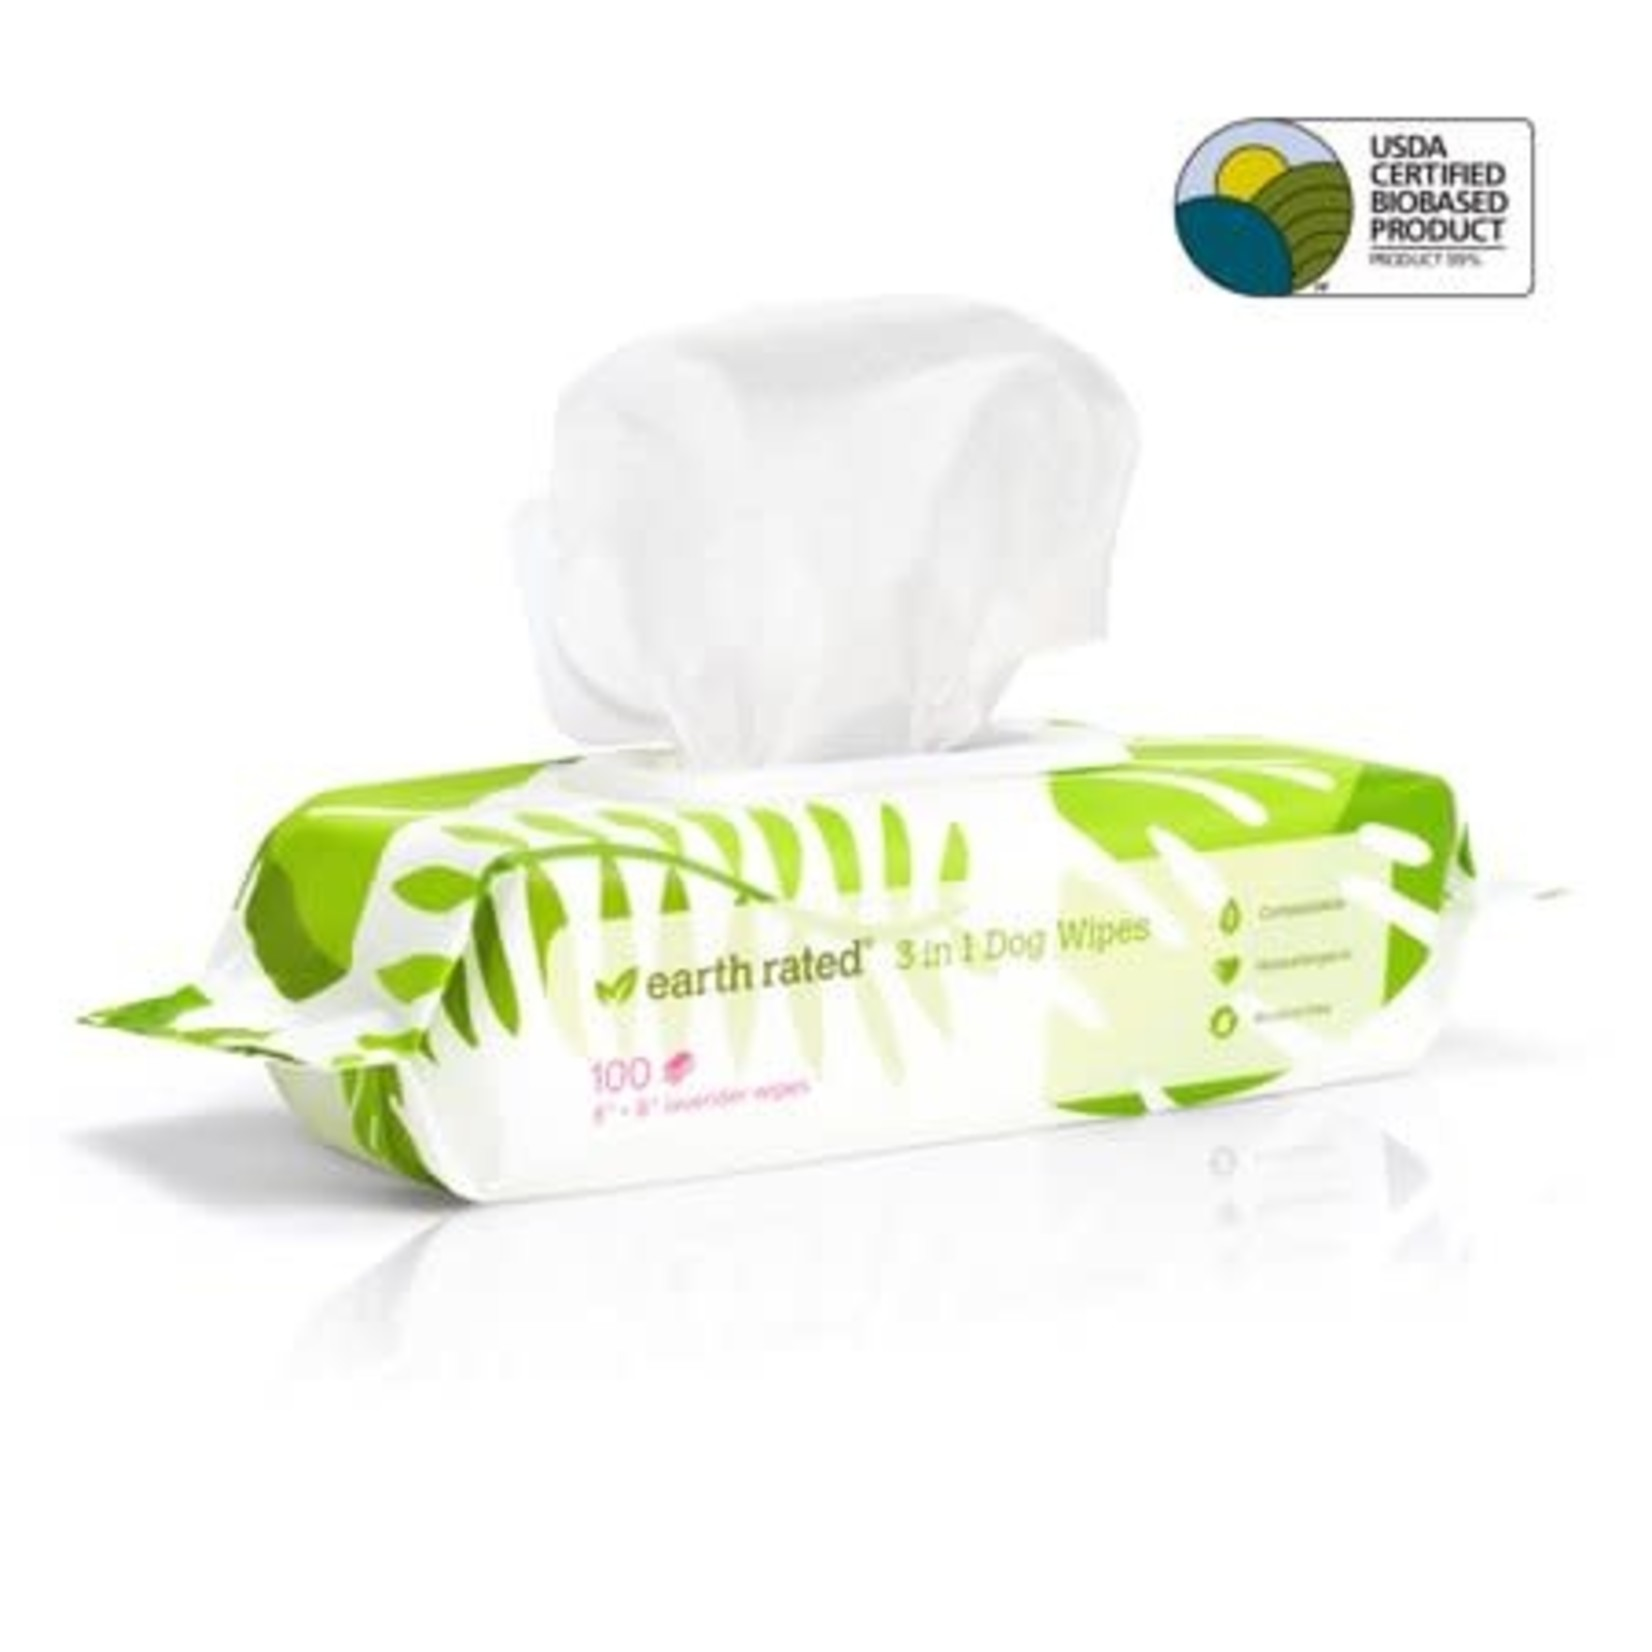 Earth Rated Earth Rated Grooming Wipes Lavender 100 Count